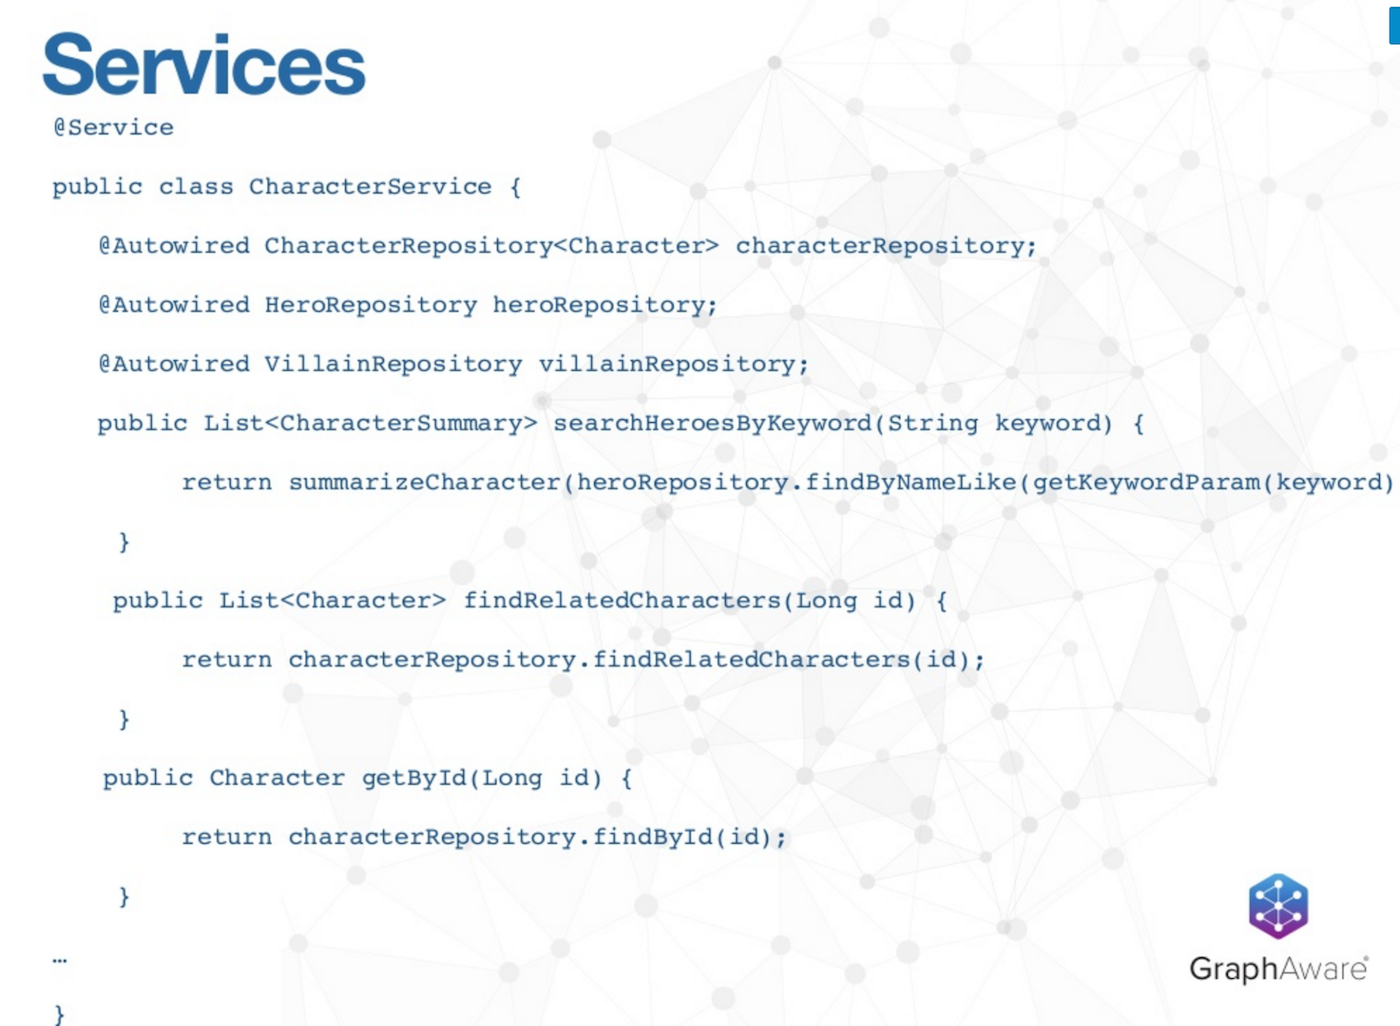 A Services Repository Example using Spring Data Neo4j 4.1